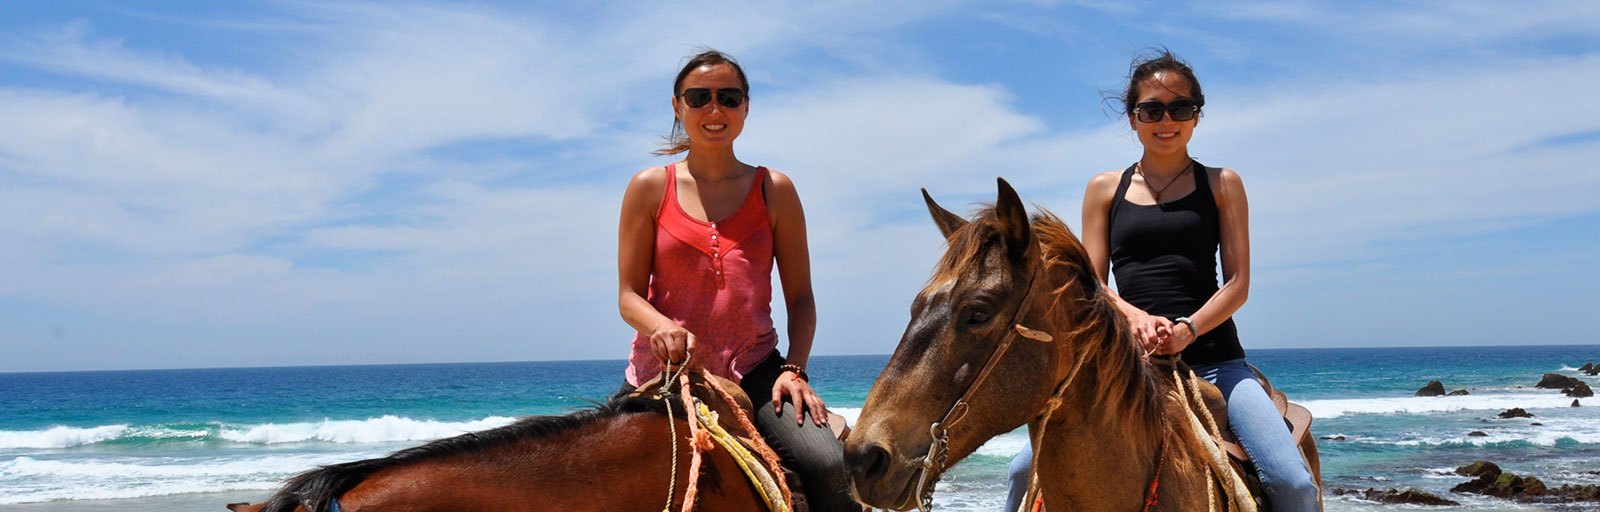 Horseback Riding & Yoga Retreat in Mexico: Friends on a Ride